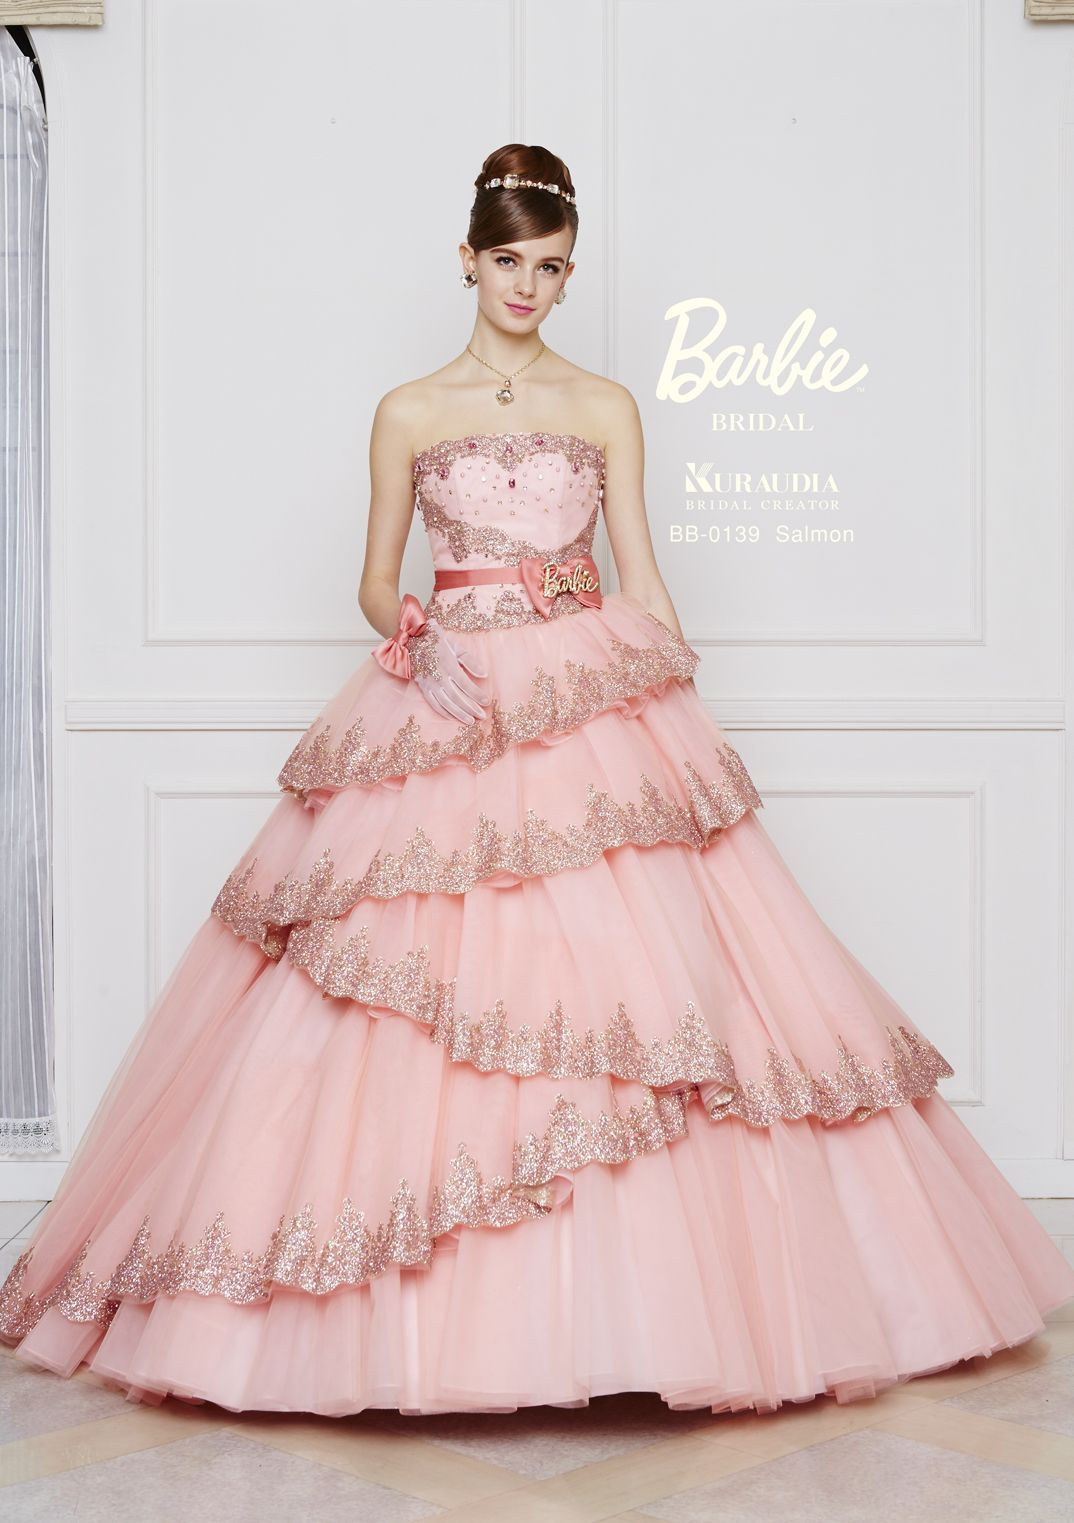 dball~dress ballgown Barbie Bridal | como princesa | Pinterest | 15 ...